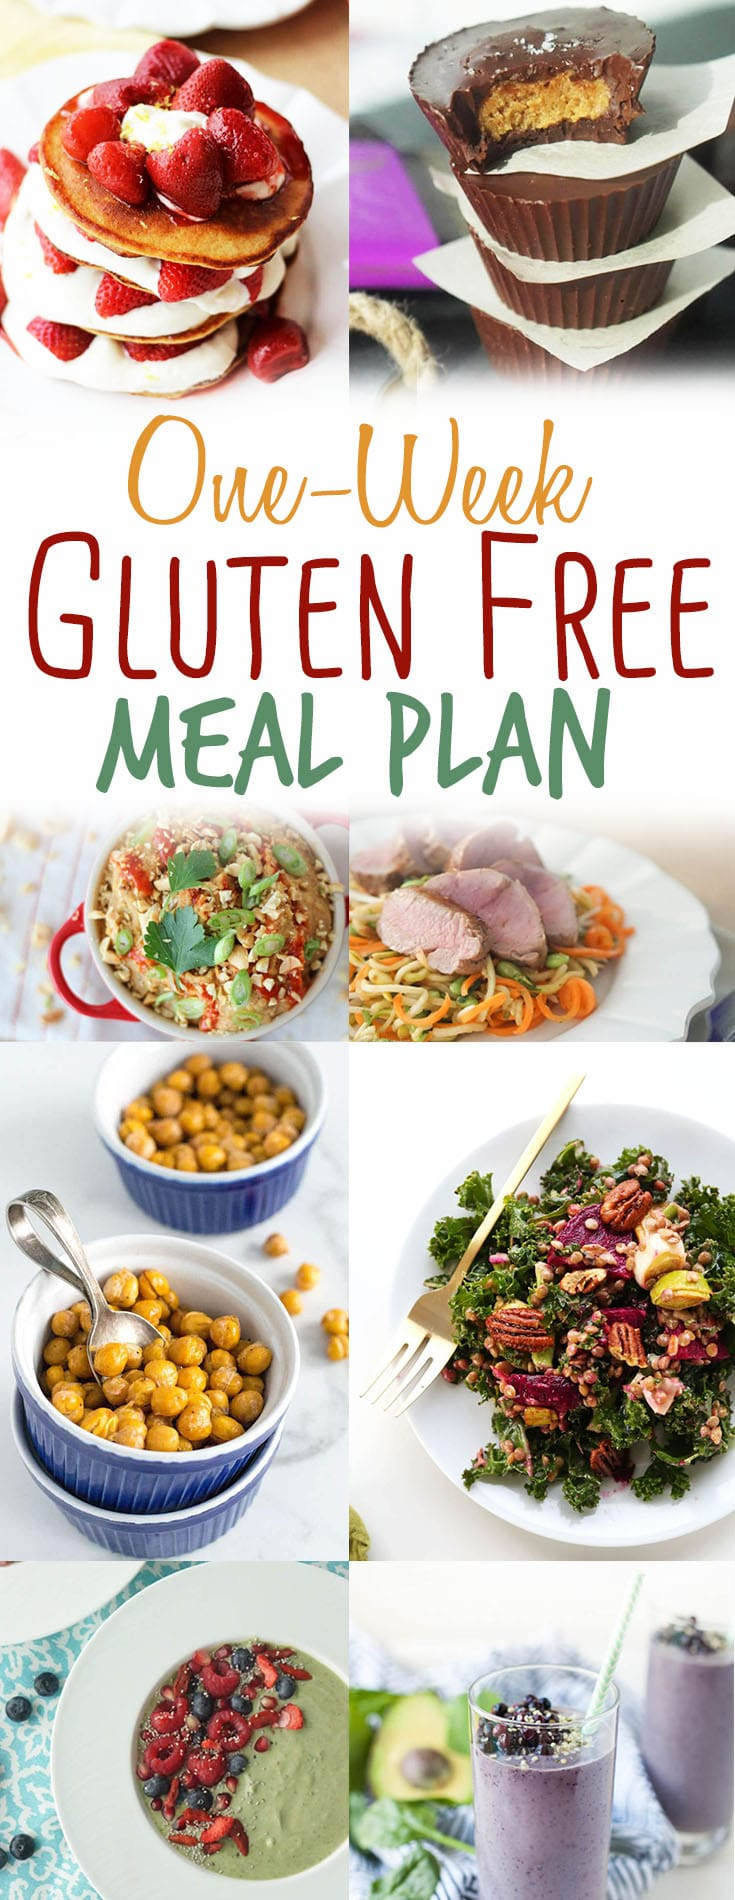 Get your One Week Beginner Gluten Free Meal Plan packed with Budget Friendly Healthy and Easy Recipes for One. #glutenfree #mealplan #oneweek #weeklymealplan #glutenfreerecipes #healthybreakfast #healthydinner #healthylunch